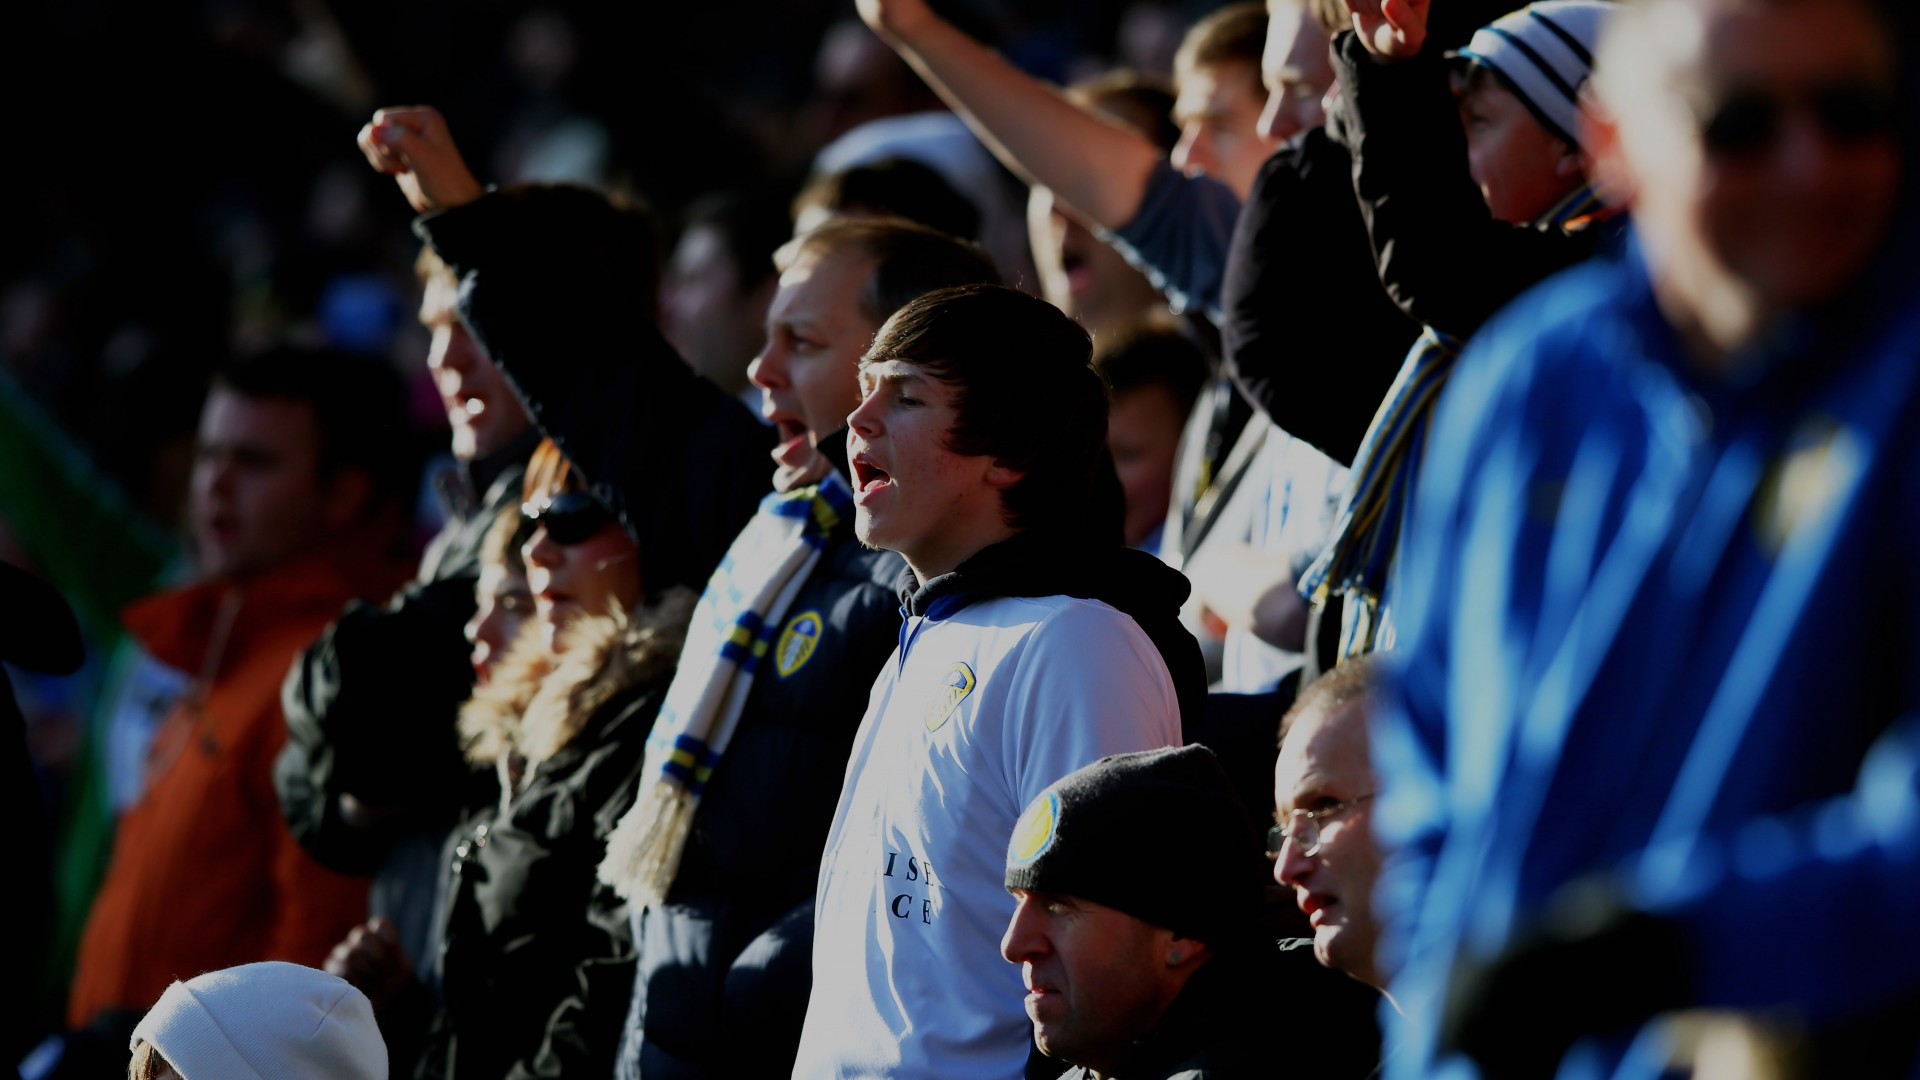 Leeds United fans are set to be hit with another ticket price hike